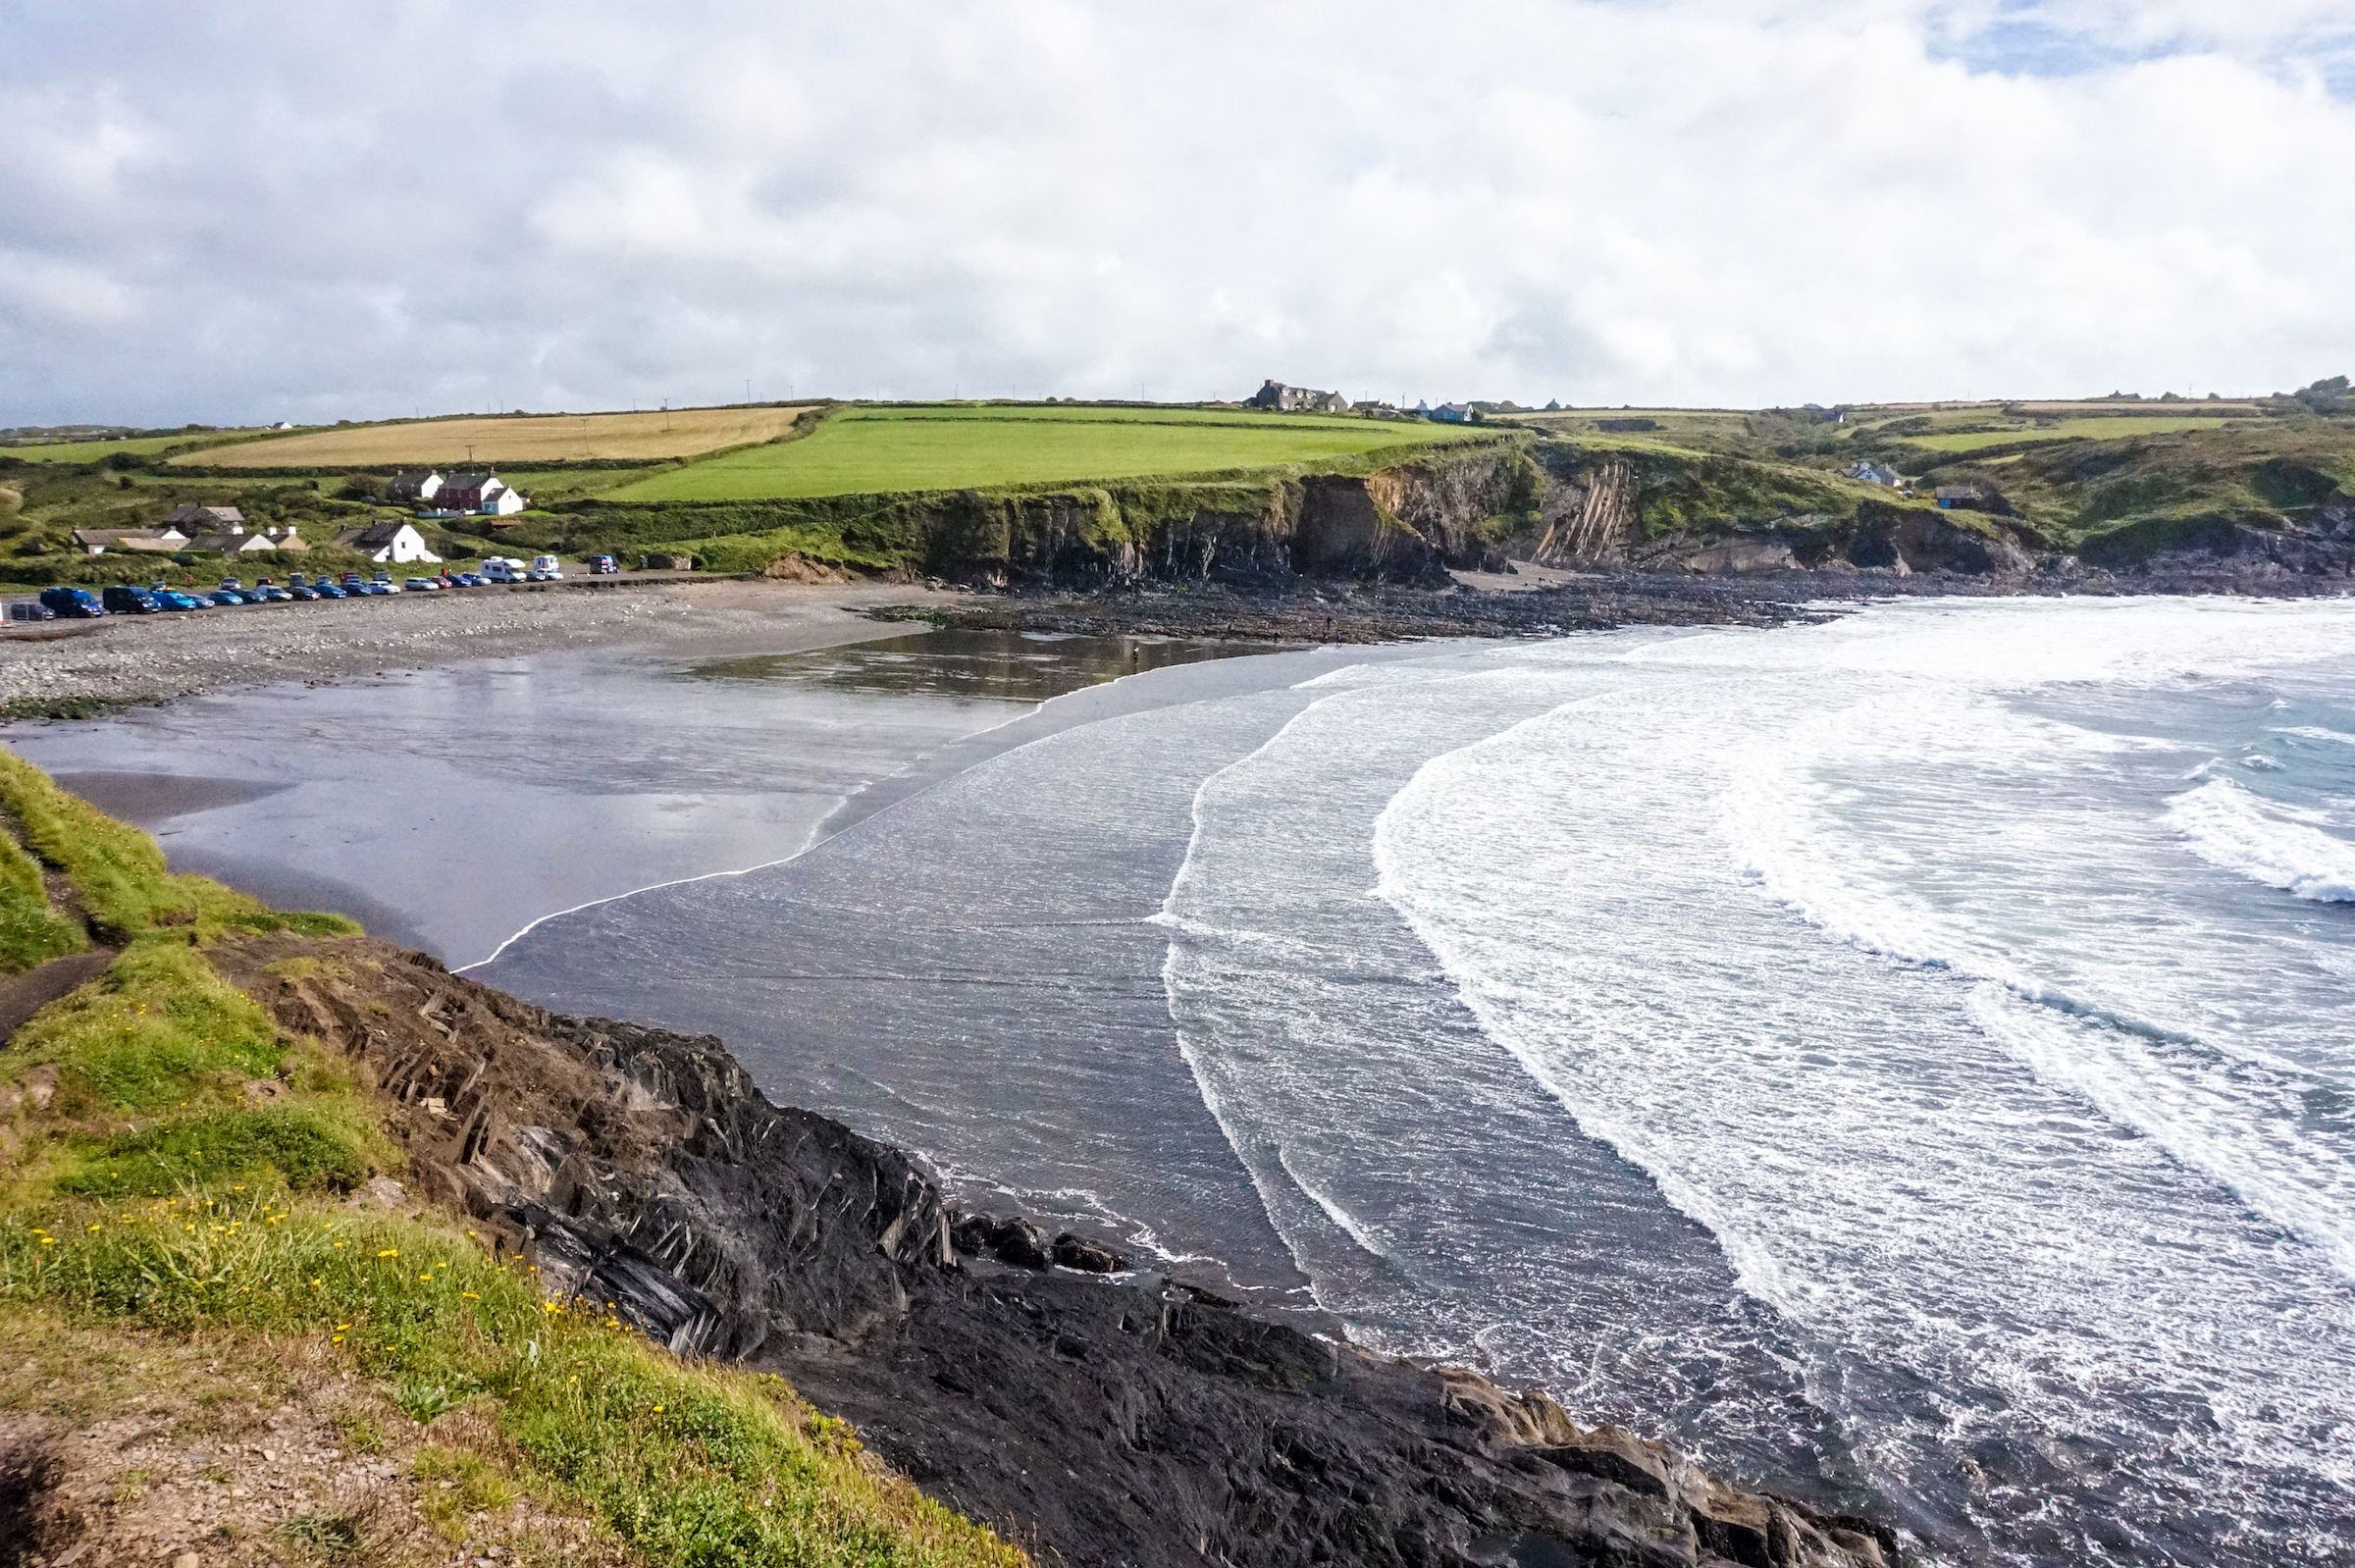 Abereiddy Beach • Road Trip Through Southern England and Wales | The Wanderful Me